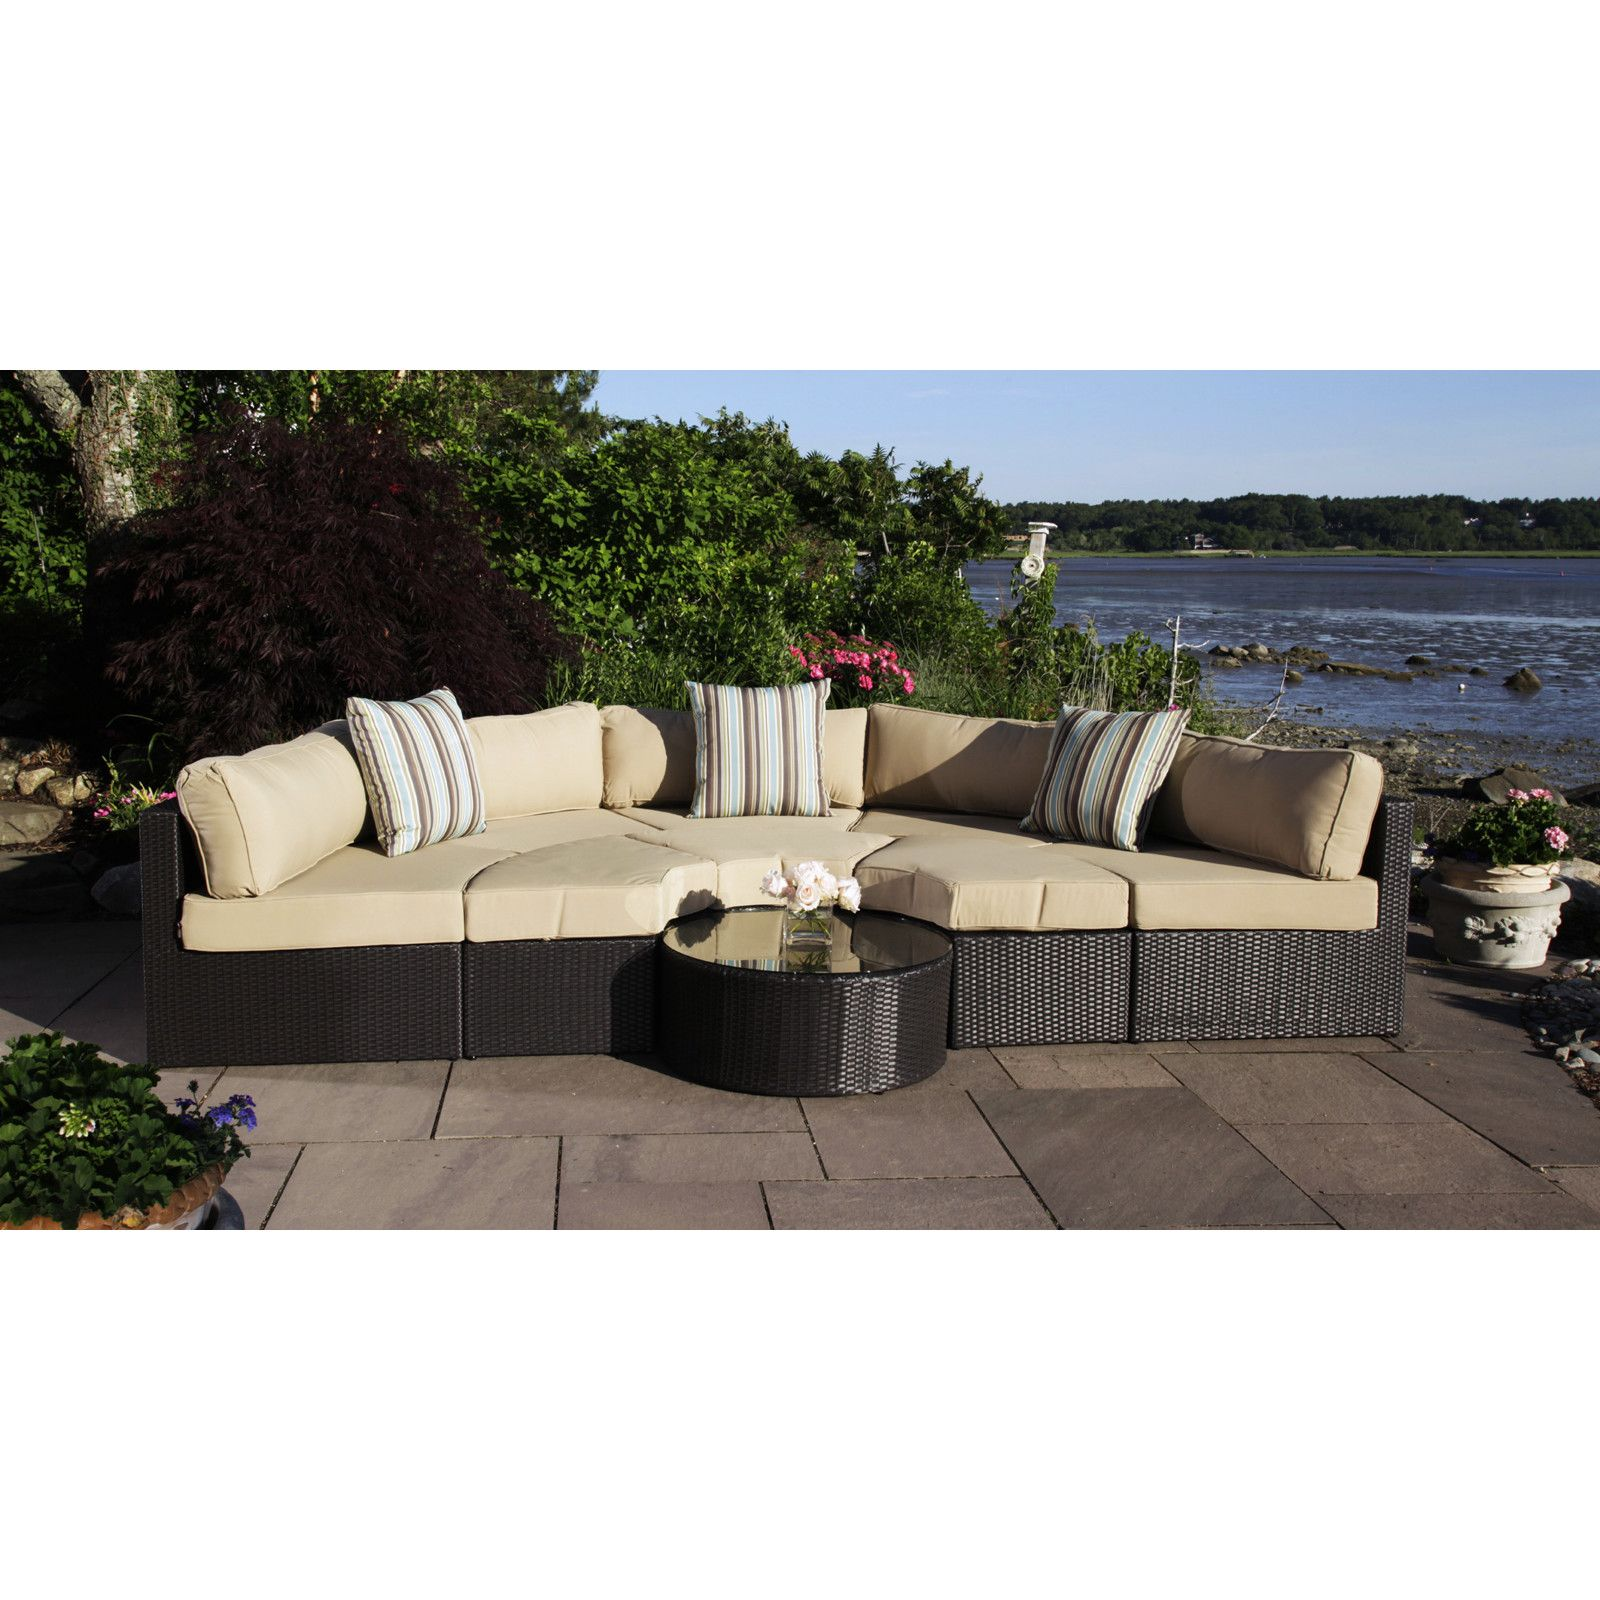 Madbury Road Santorini 5 Piece Daybed Set with Cushions